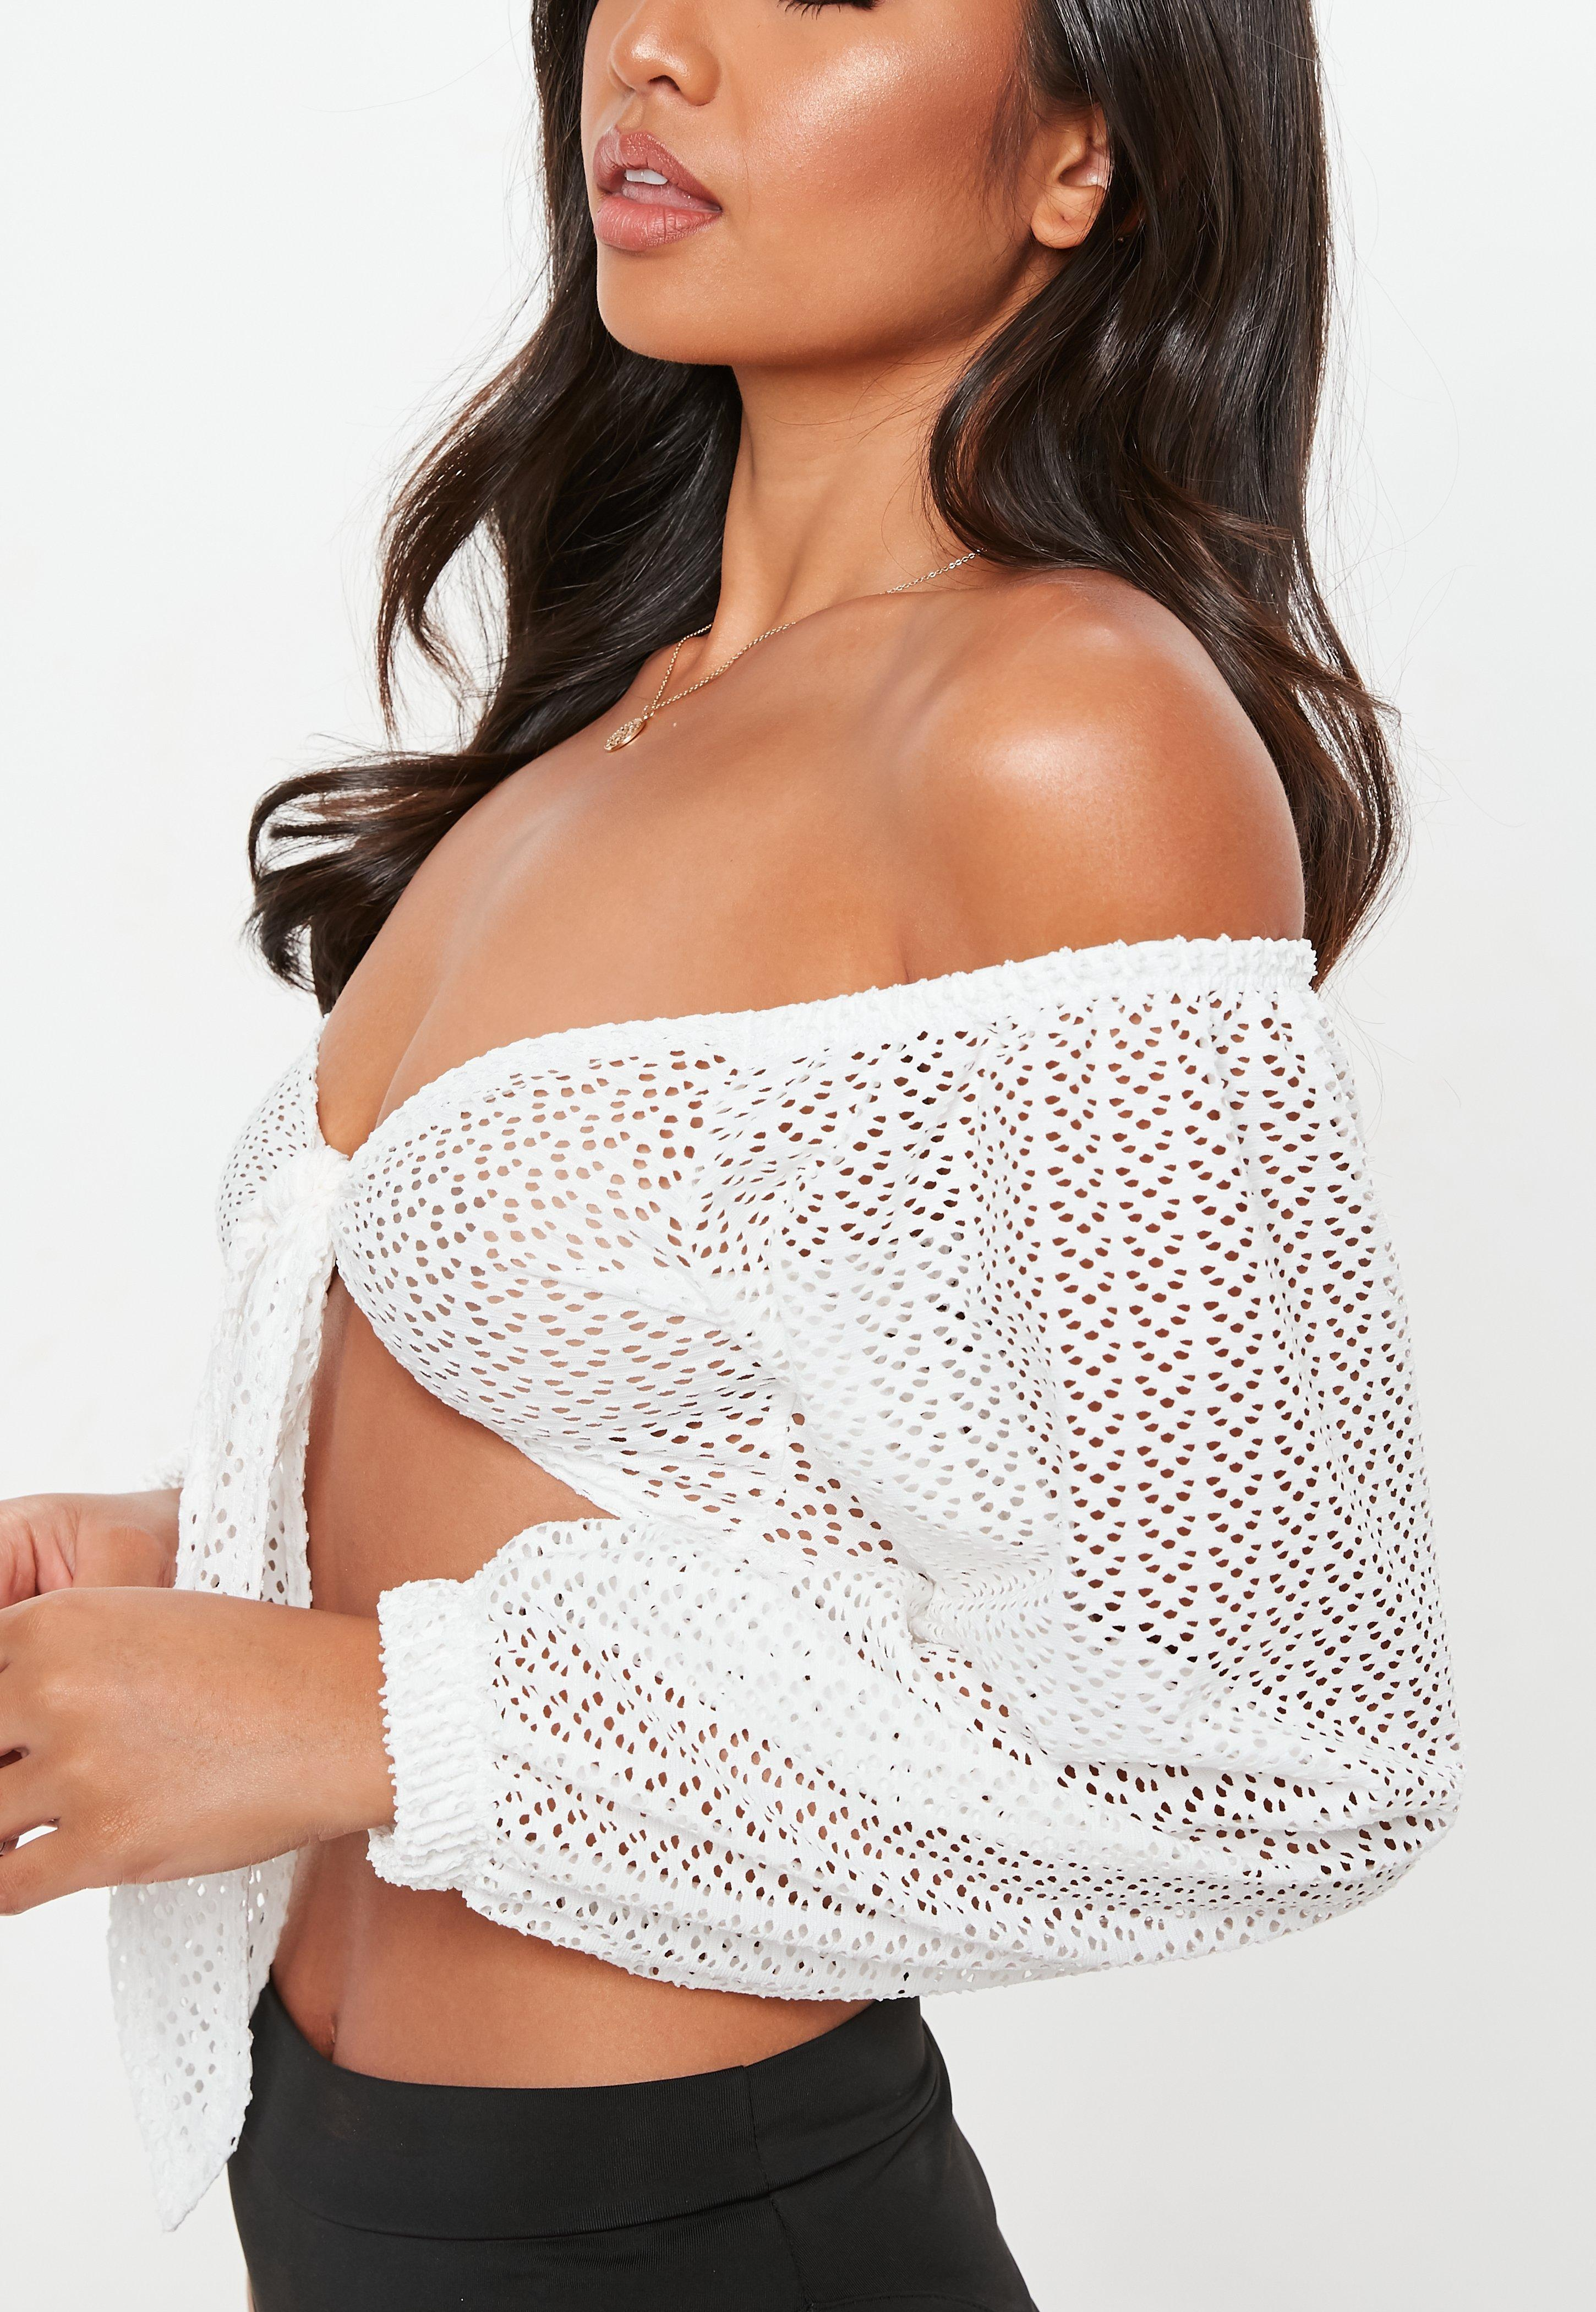 841150b103f4b Lyst - Missguided White Bardot Tie Front Crochet Top in White